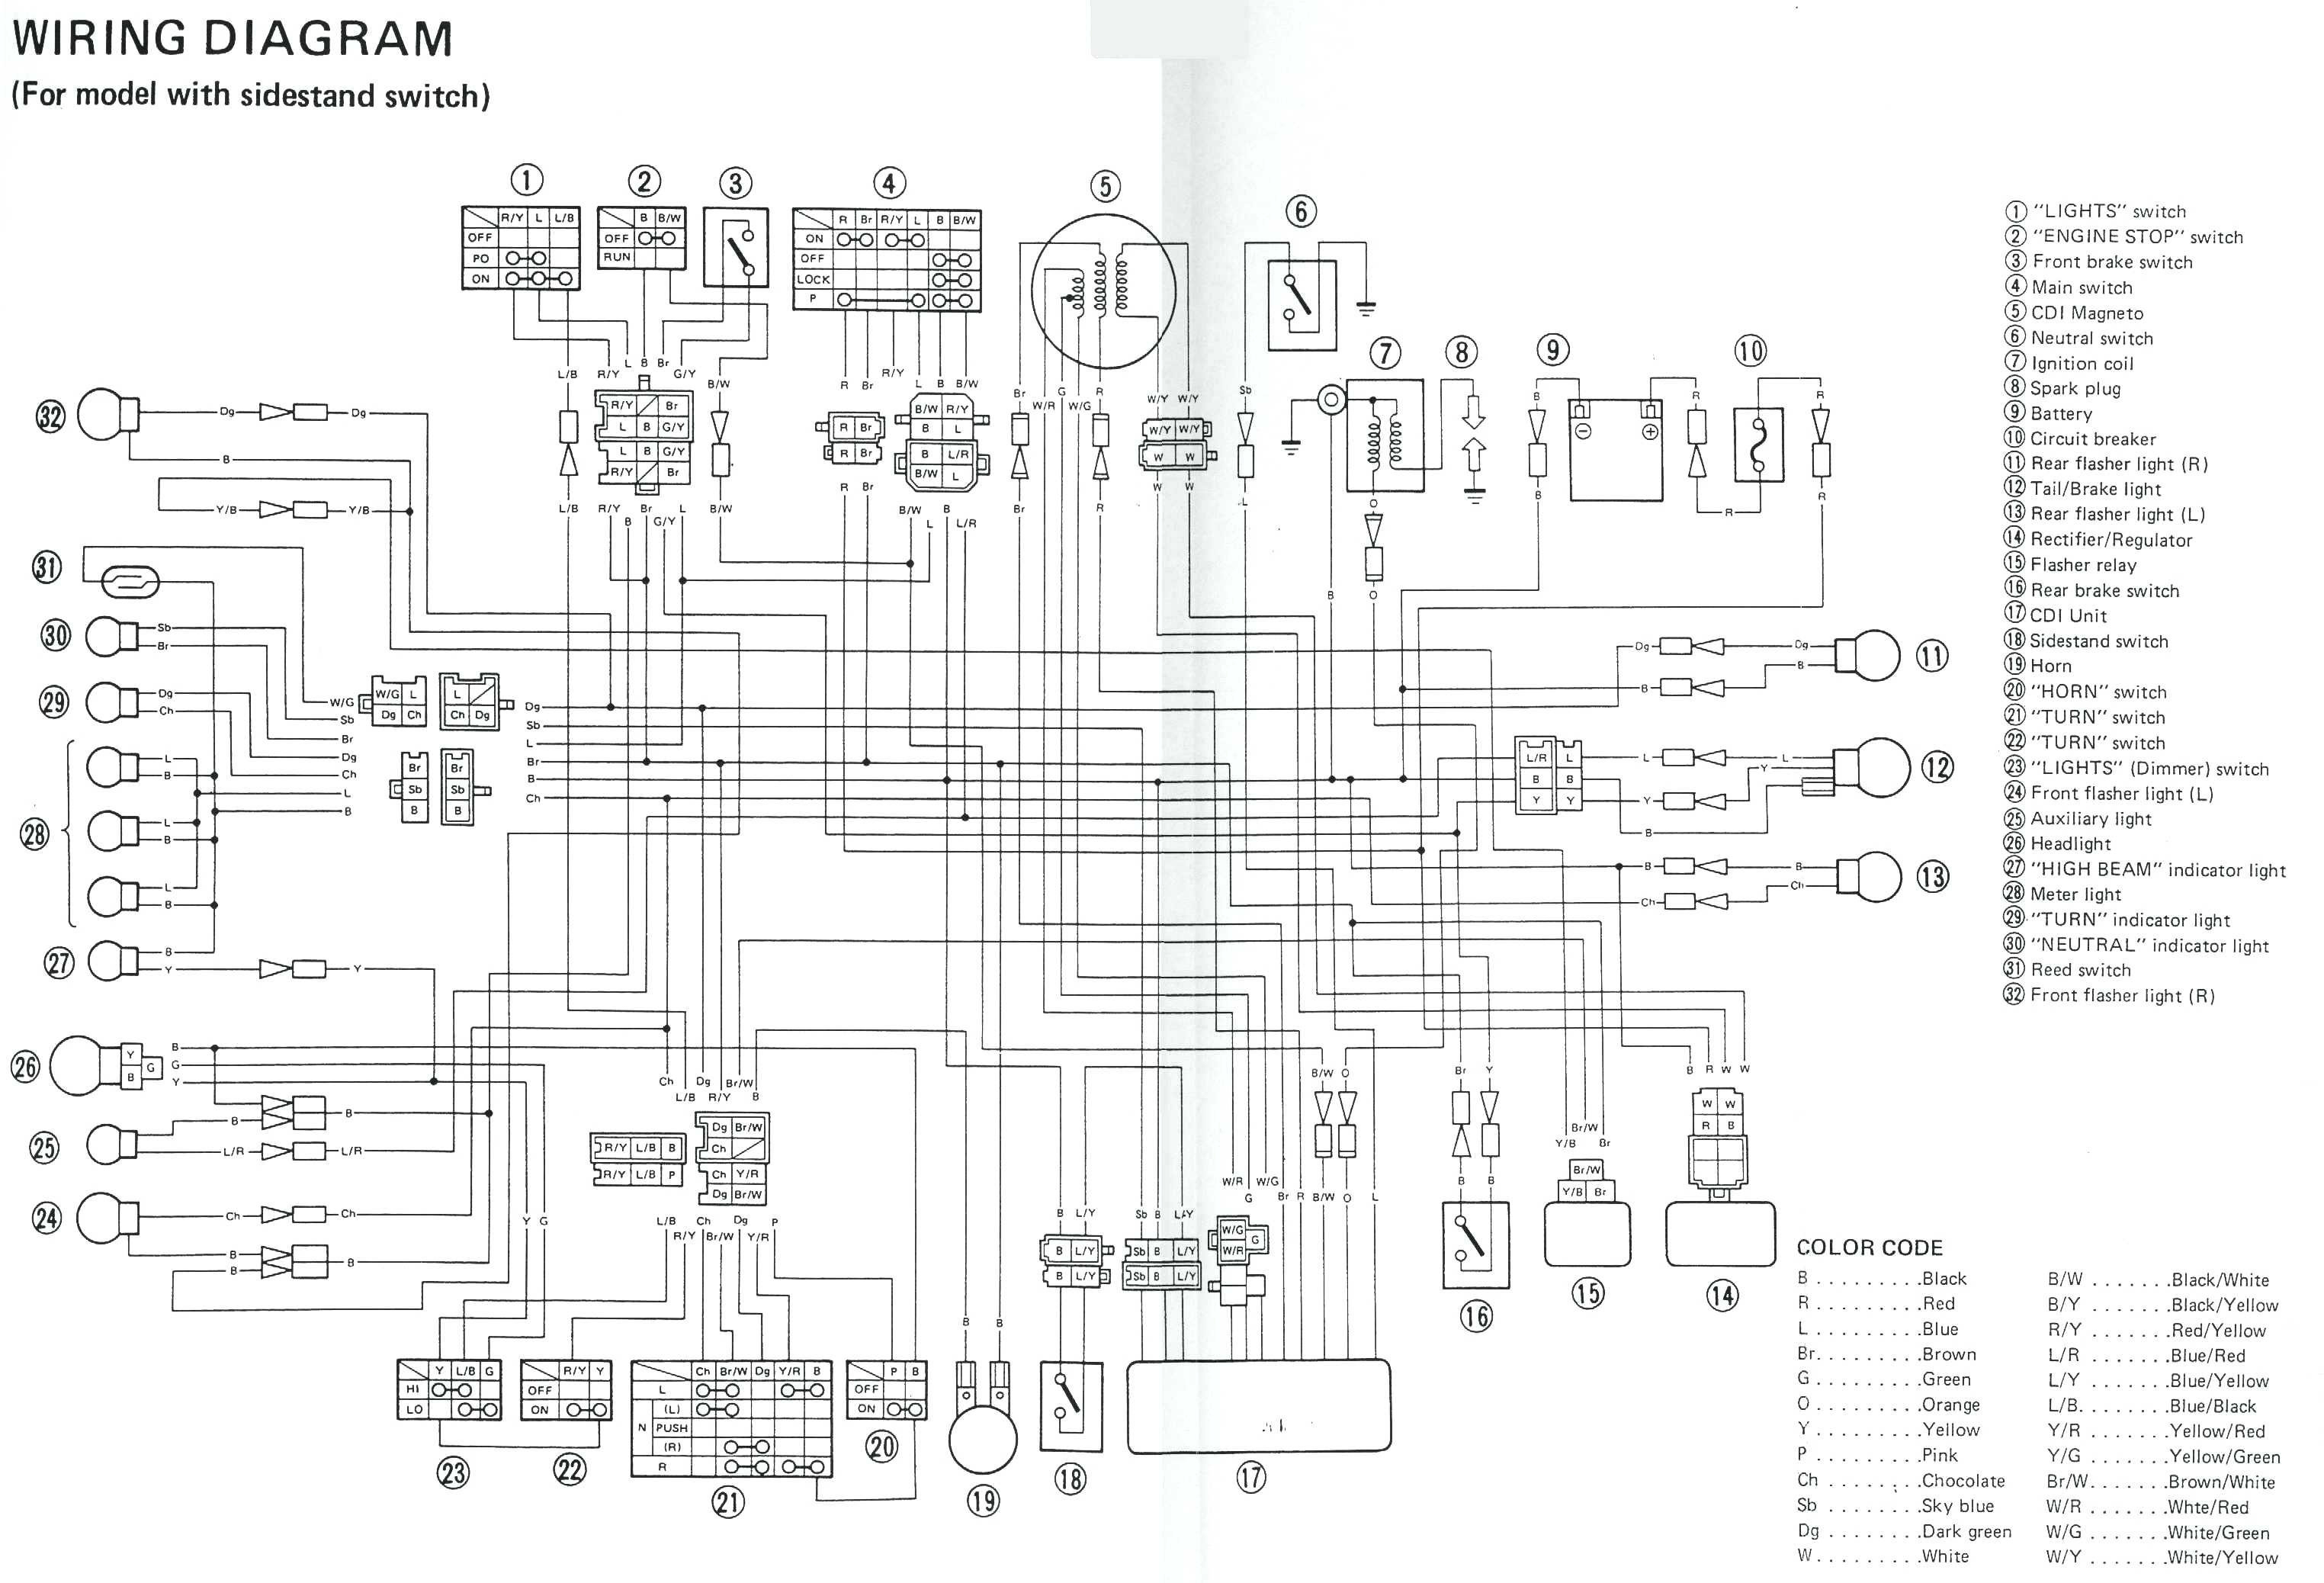 Yamaha Outboard Remote Control Wiring Diagram Electrical Circuit - Yamaha 703 Remote Control Wiring Diagram